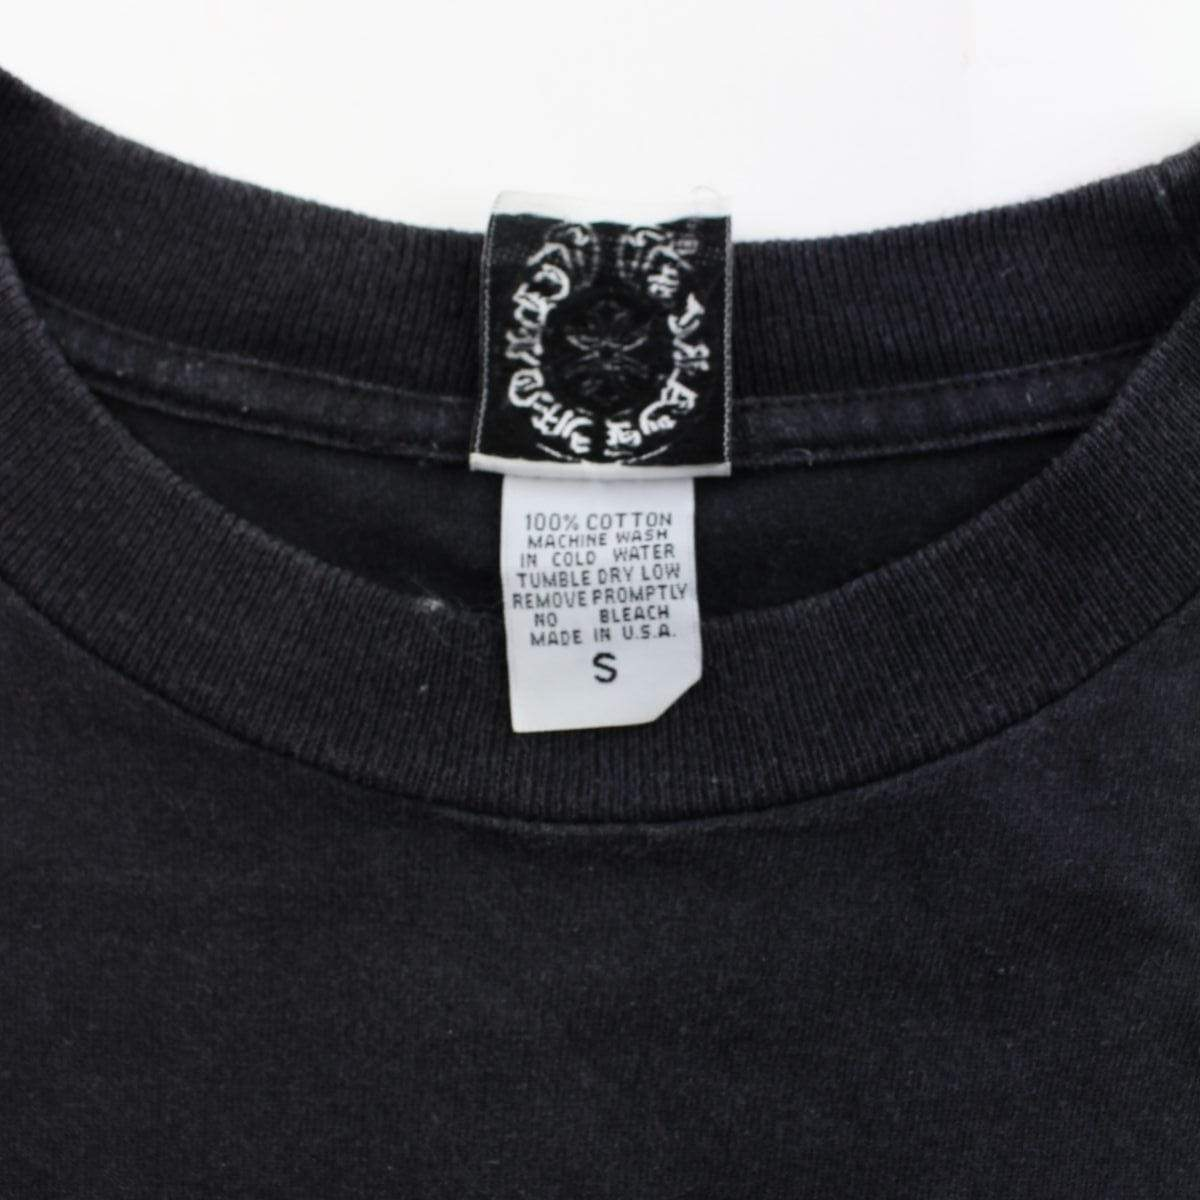 chrome hearts dagger pocket ls black - SaruGeneral